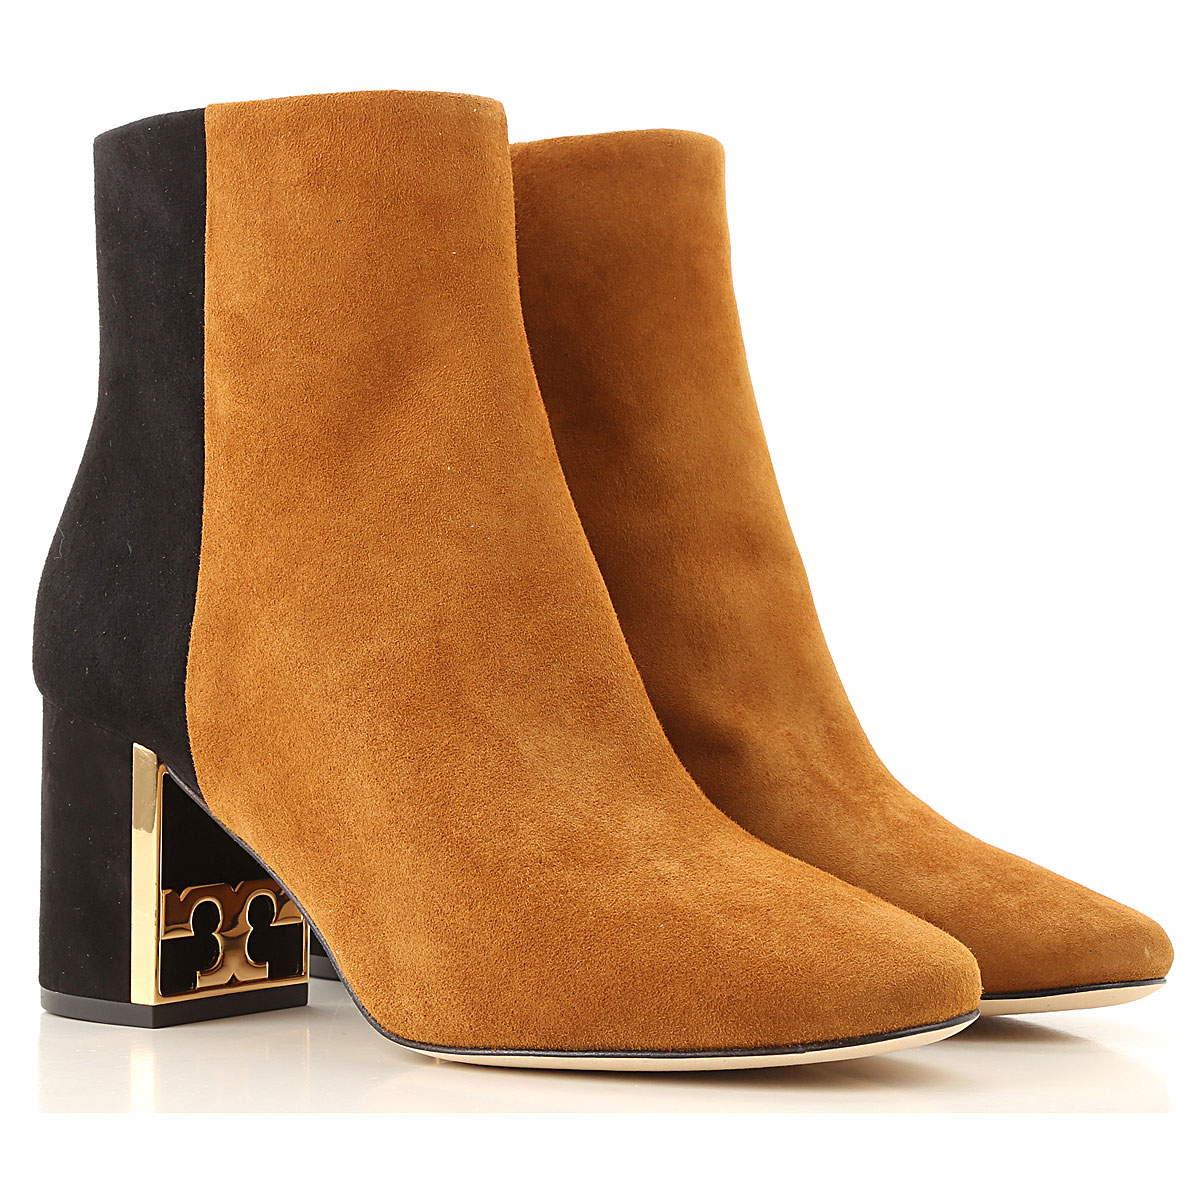 Tory Burch Boots for Women, Booties On Sale, Dark Tiramisu, Leather, 2019, 6 6.5 7 8